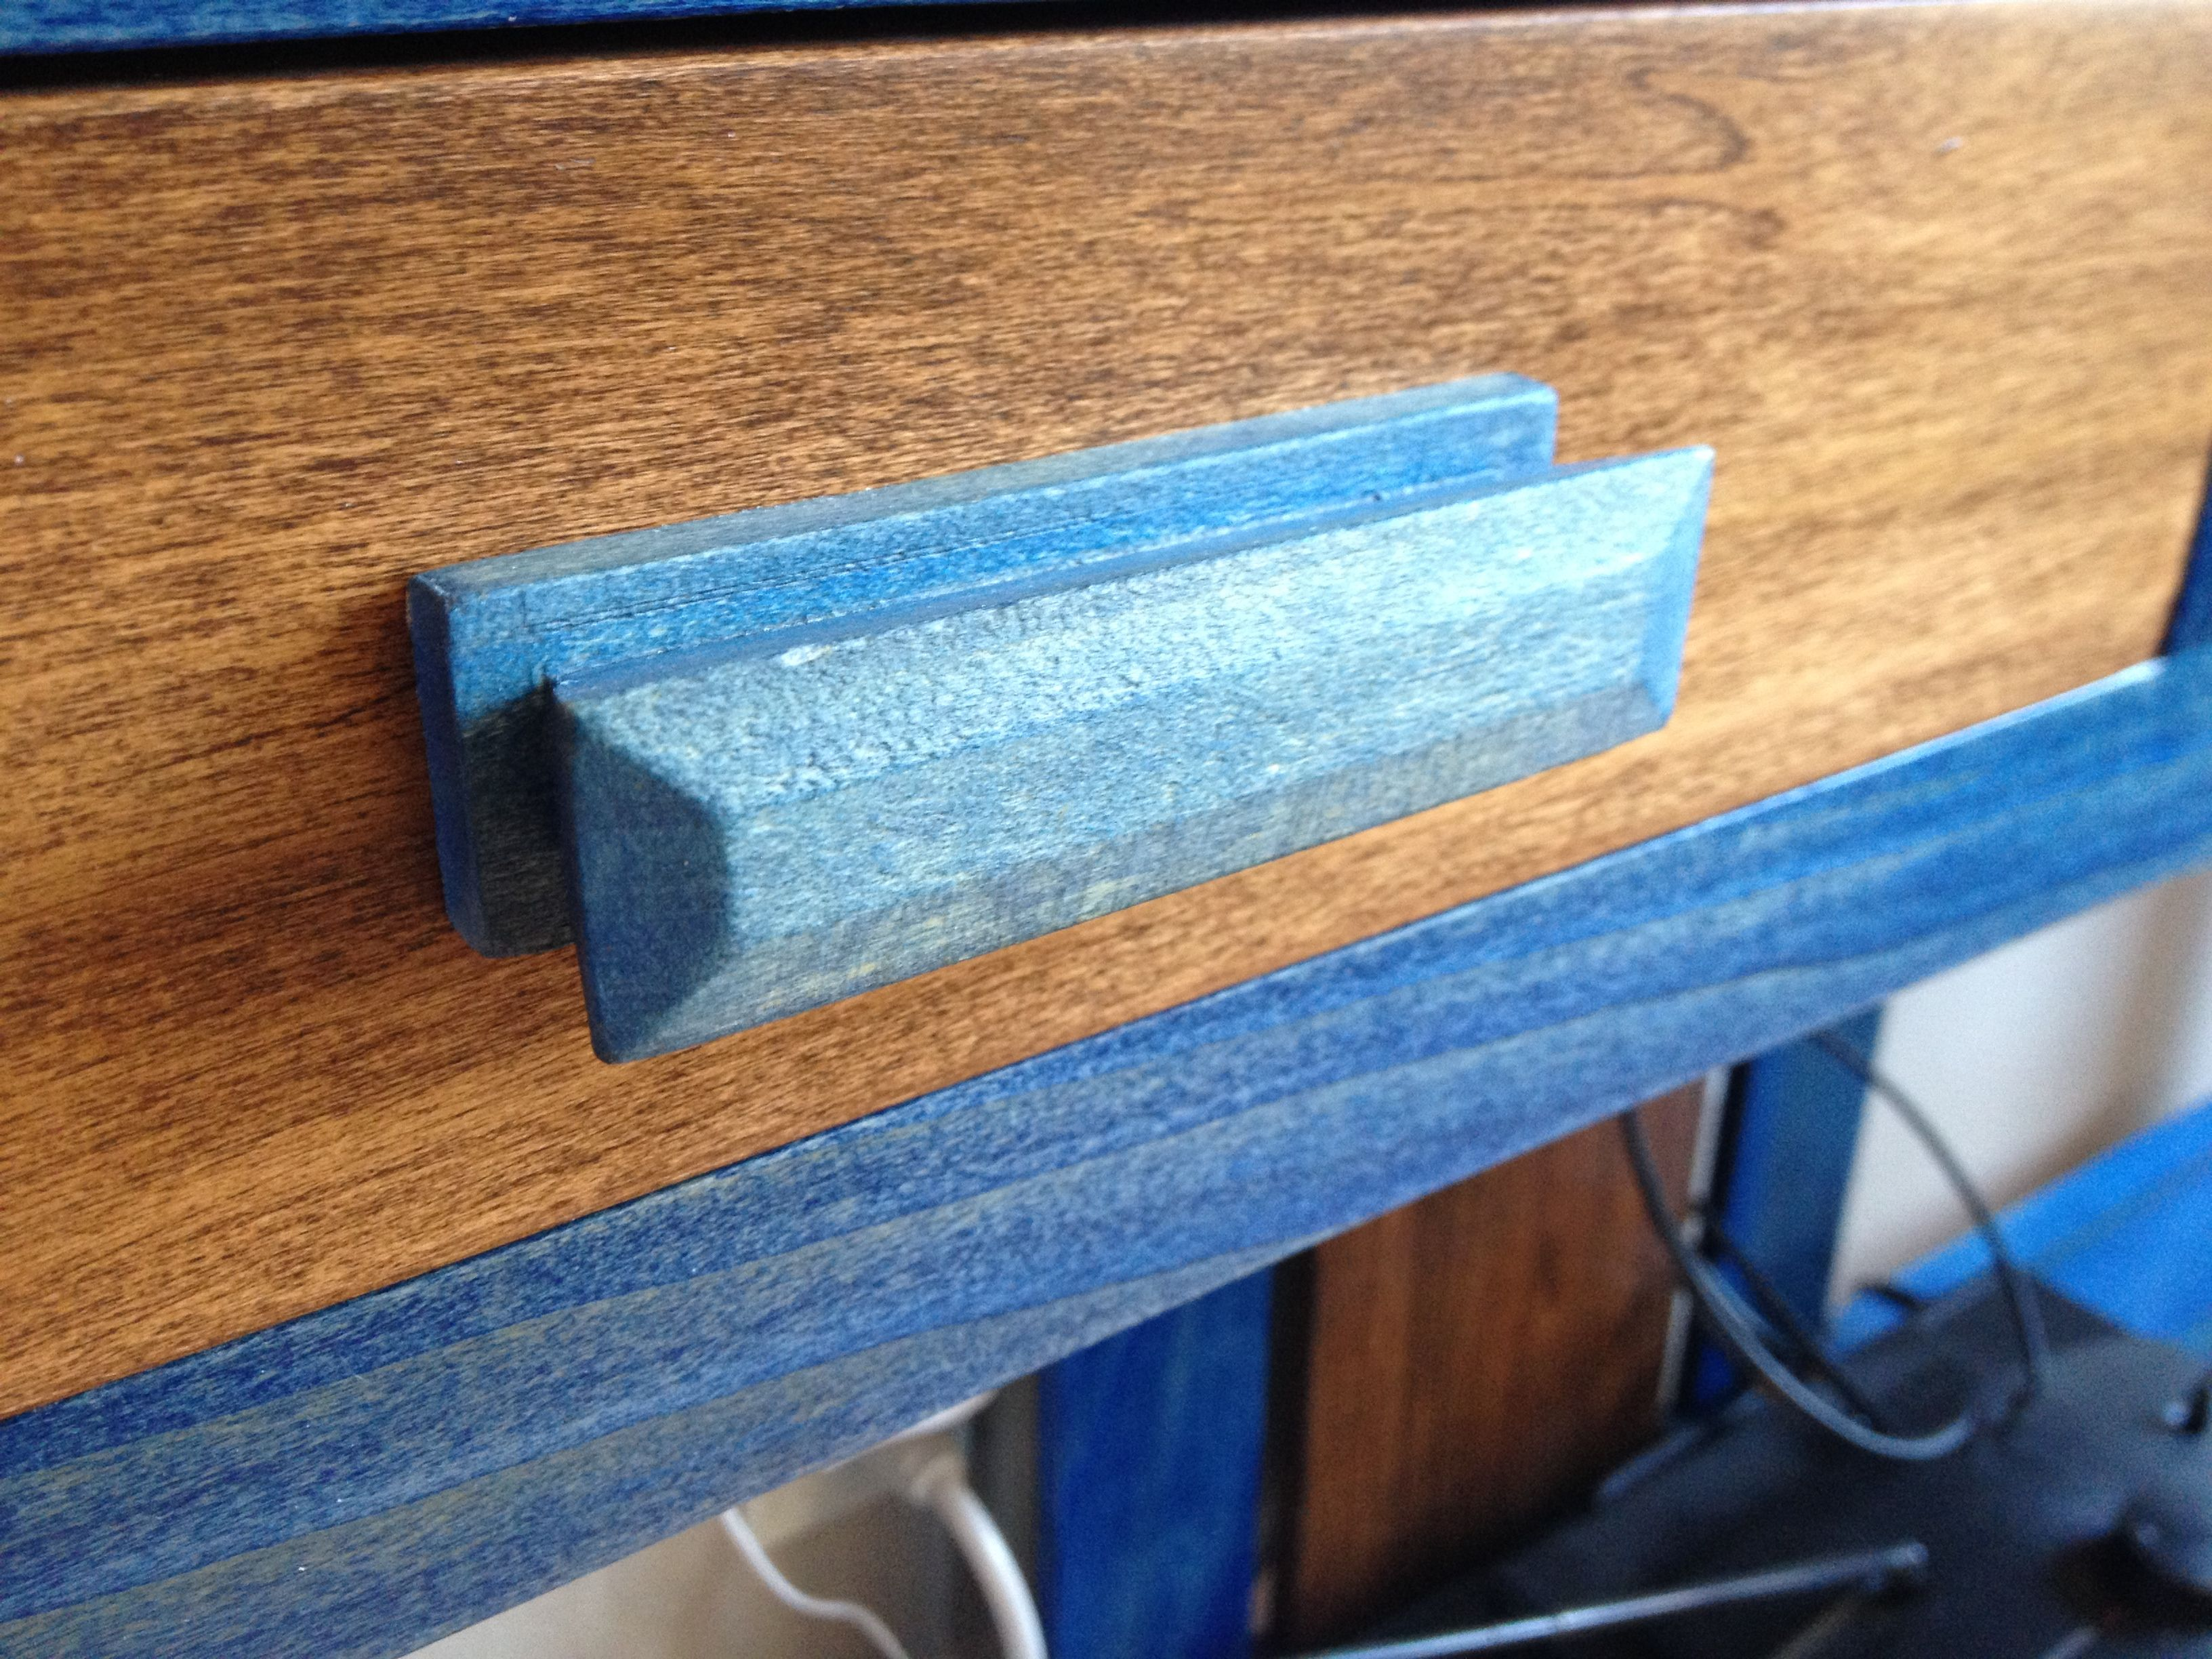 Shop made drawer pulls | Personal projects | Pinterest